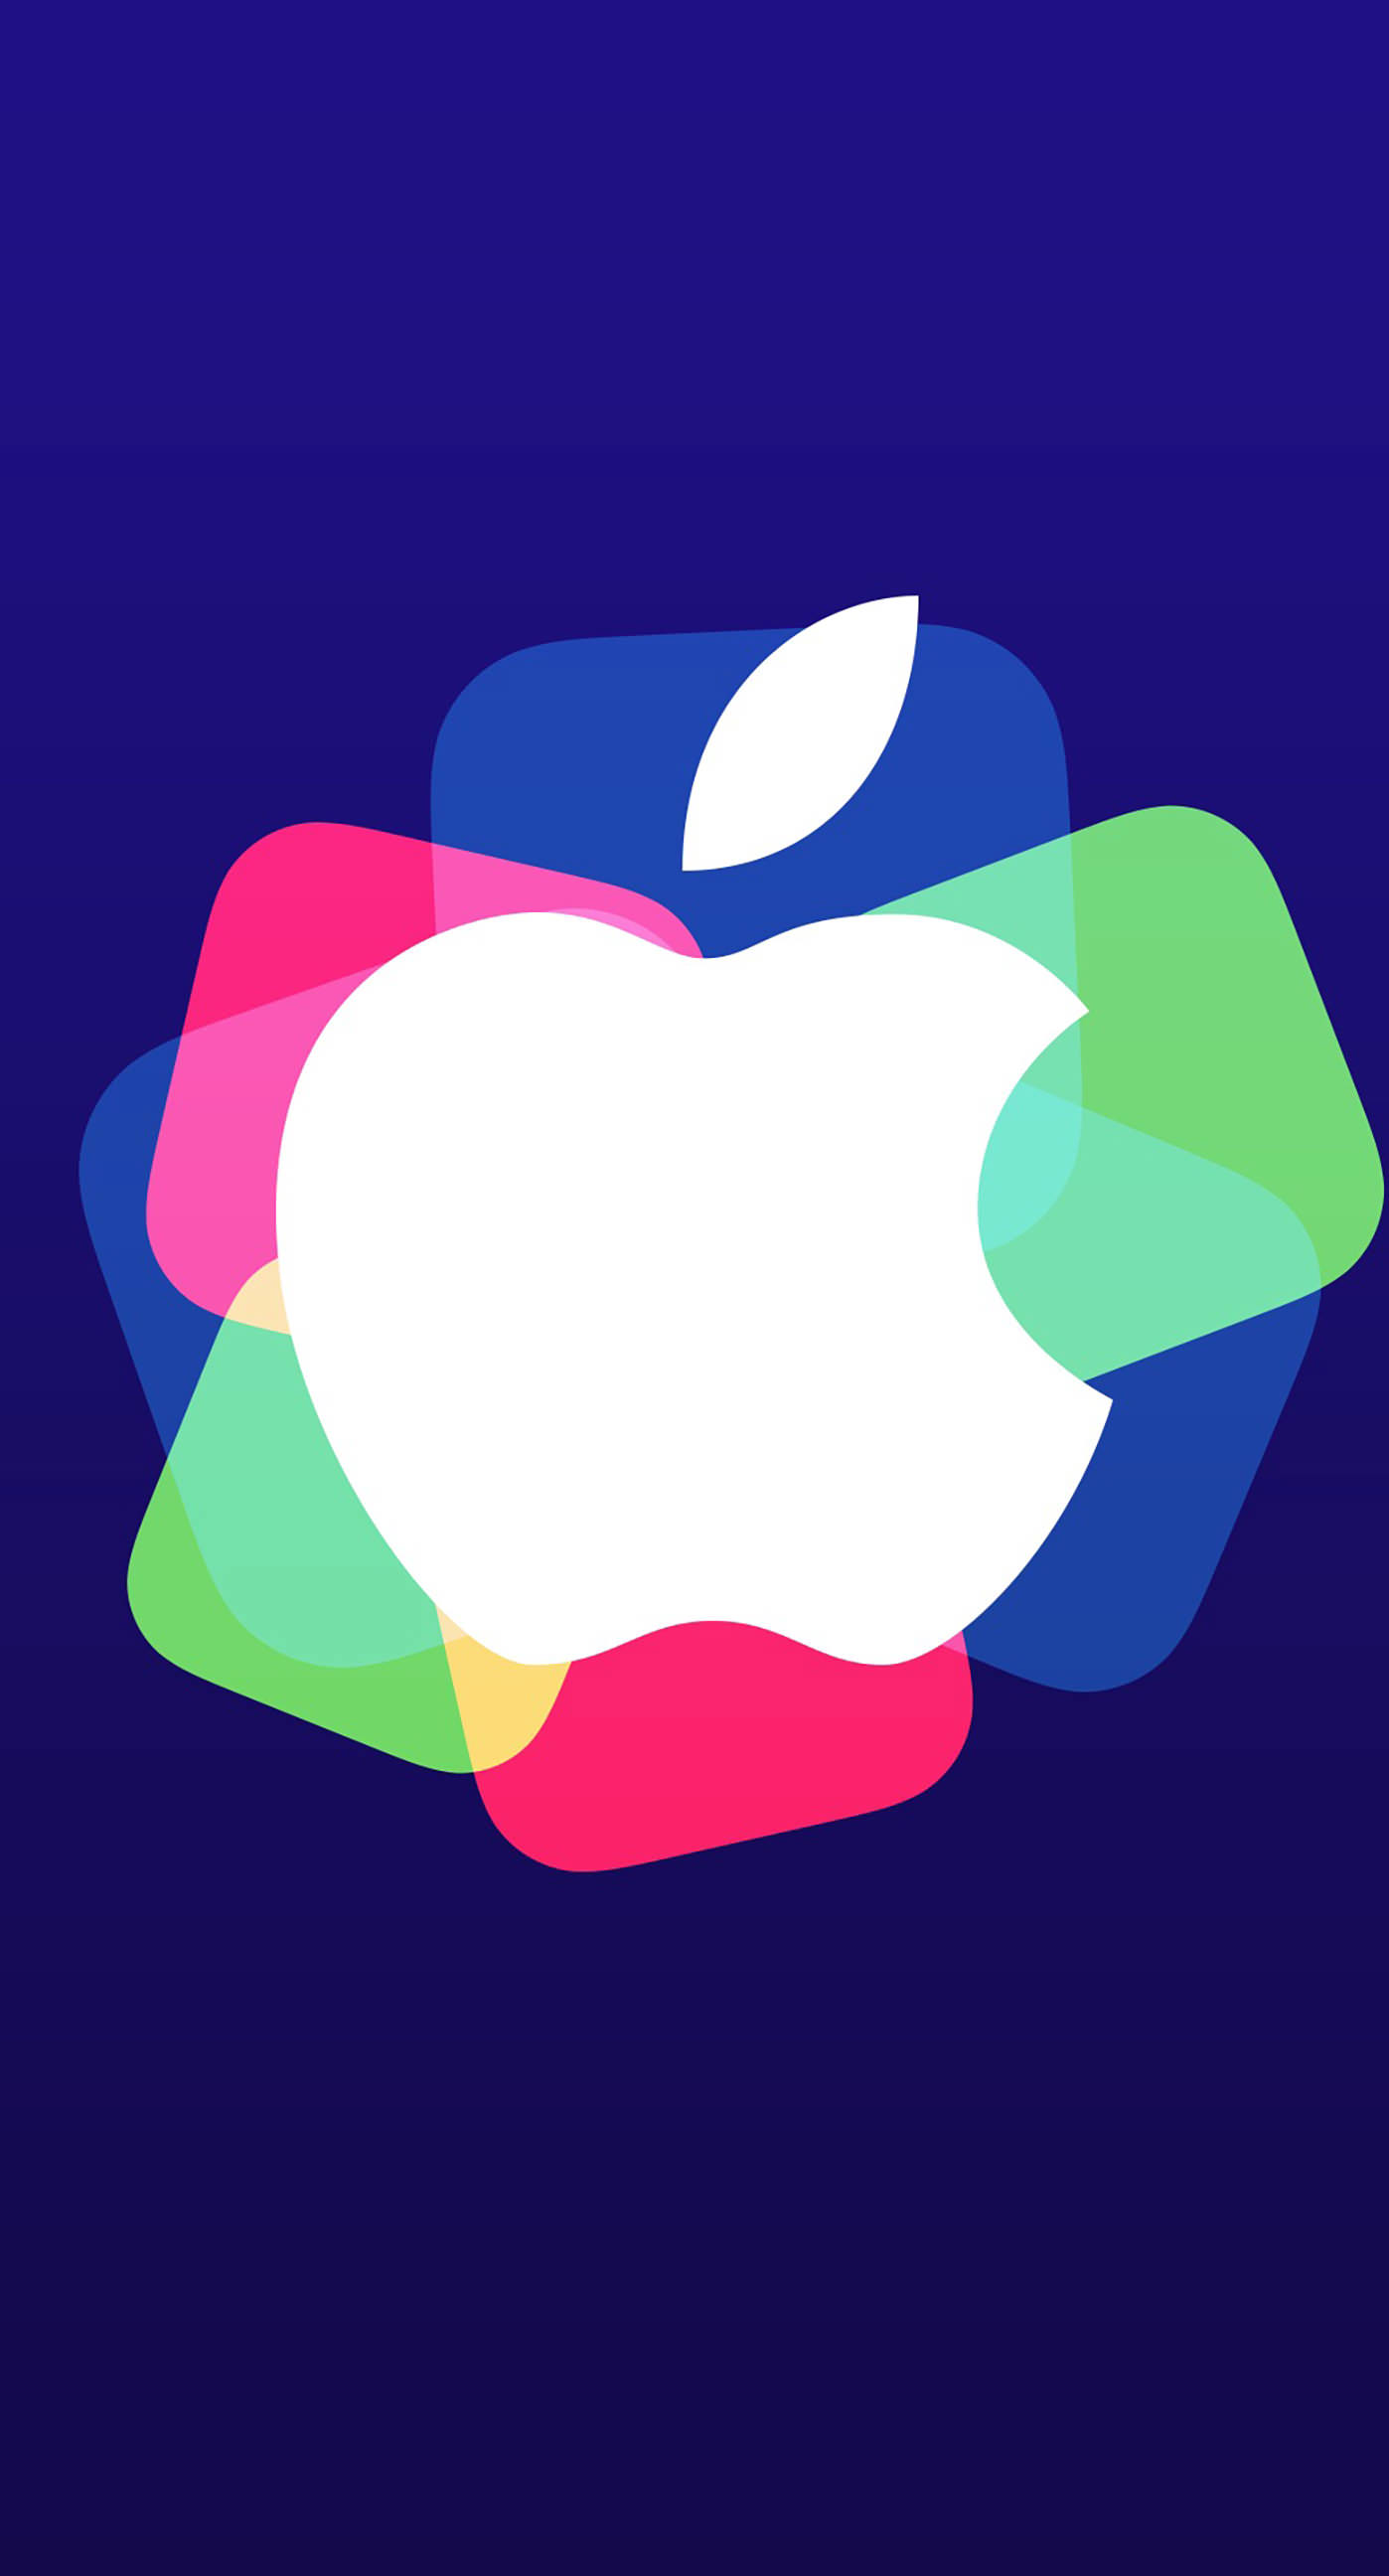 cool apple logo wallpaper for iphone. iphone 6s plus / 6 wallpaper cool apple logo for iphone